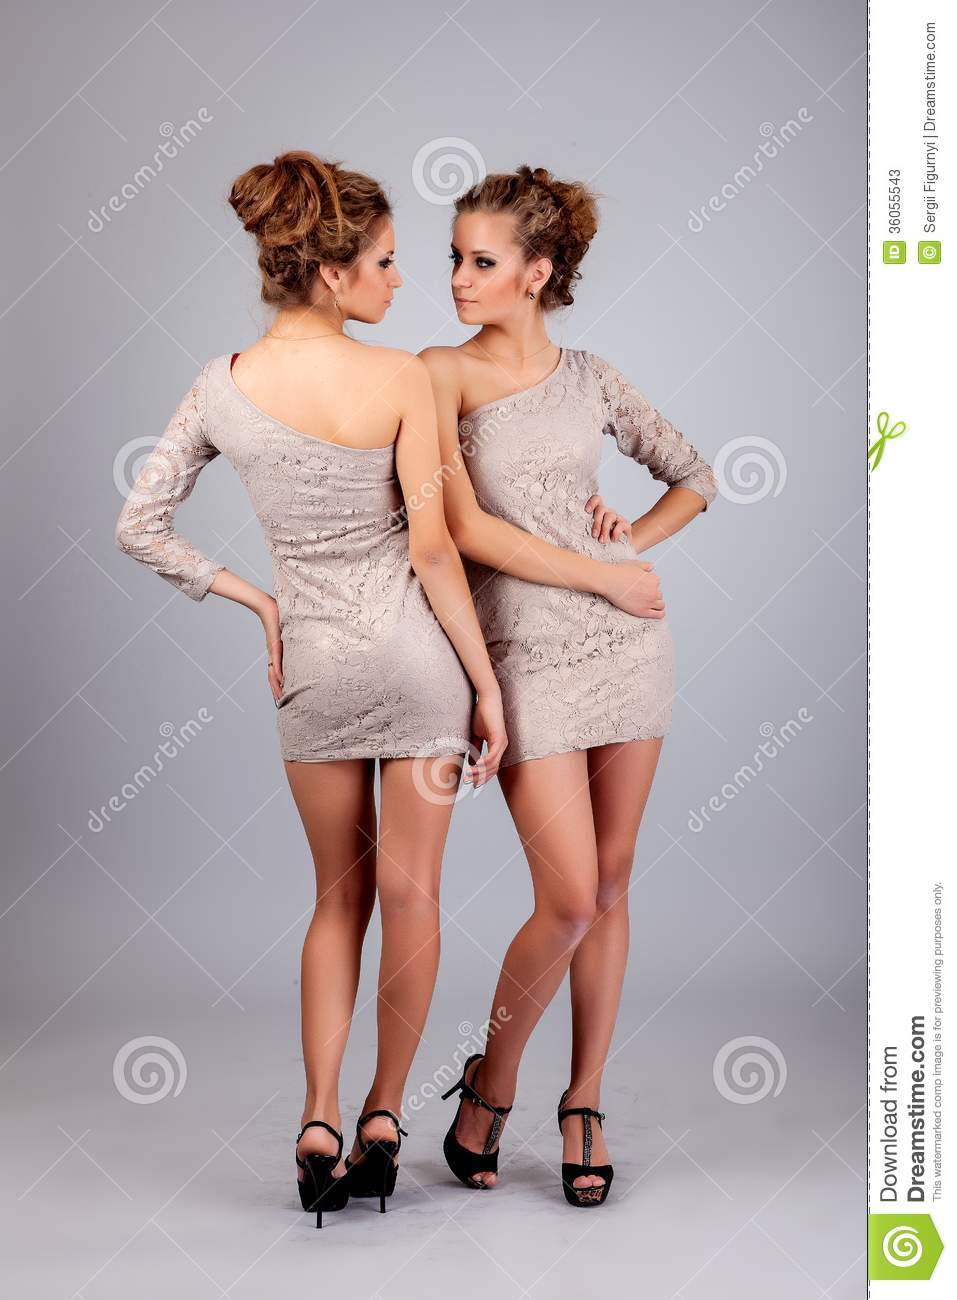 Two Girls Twins Isolated On The Grey Background Stock